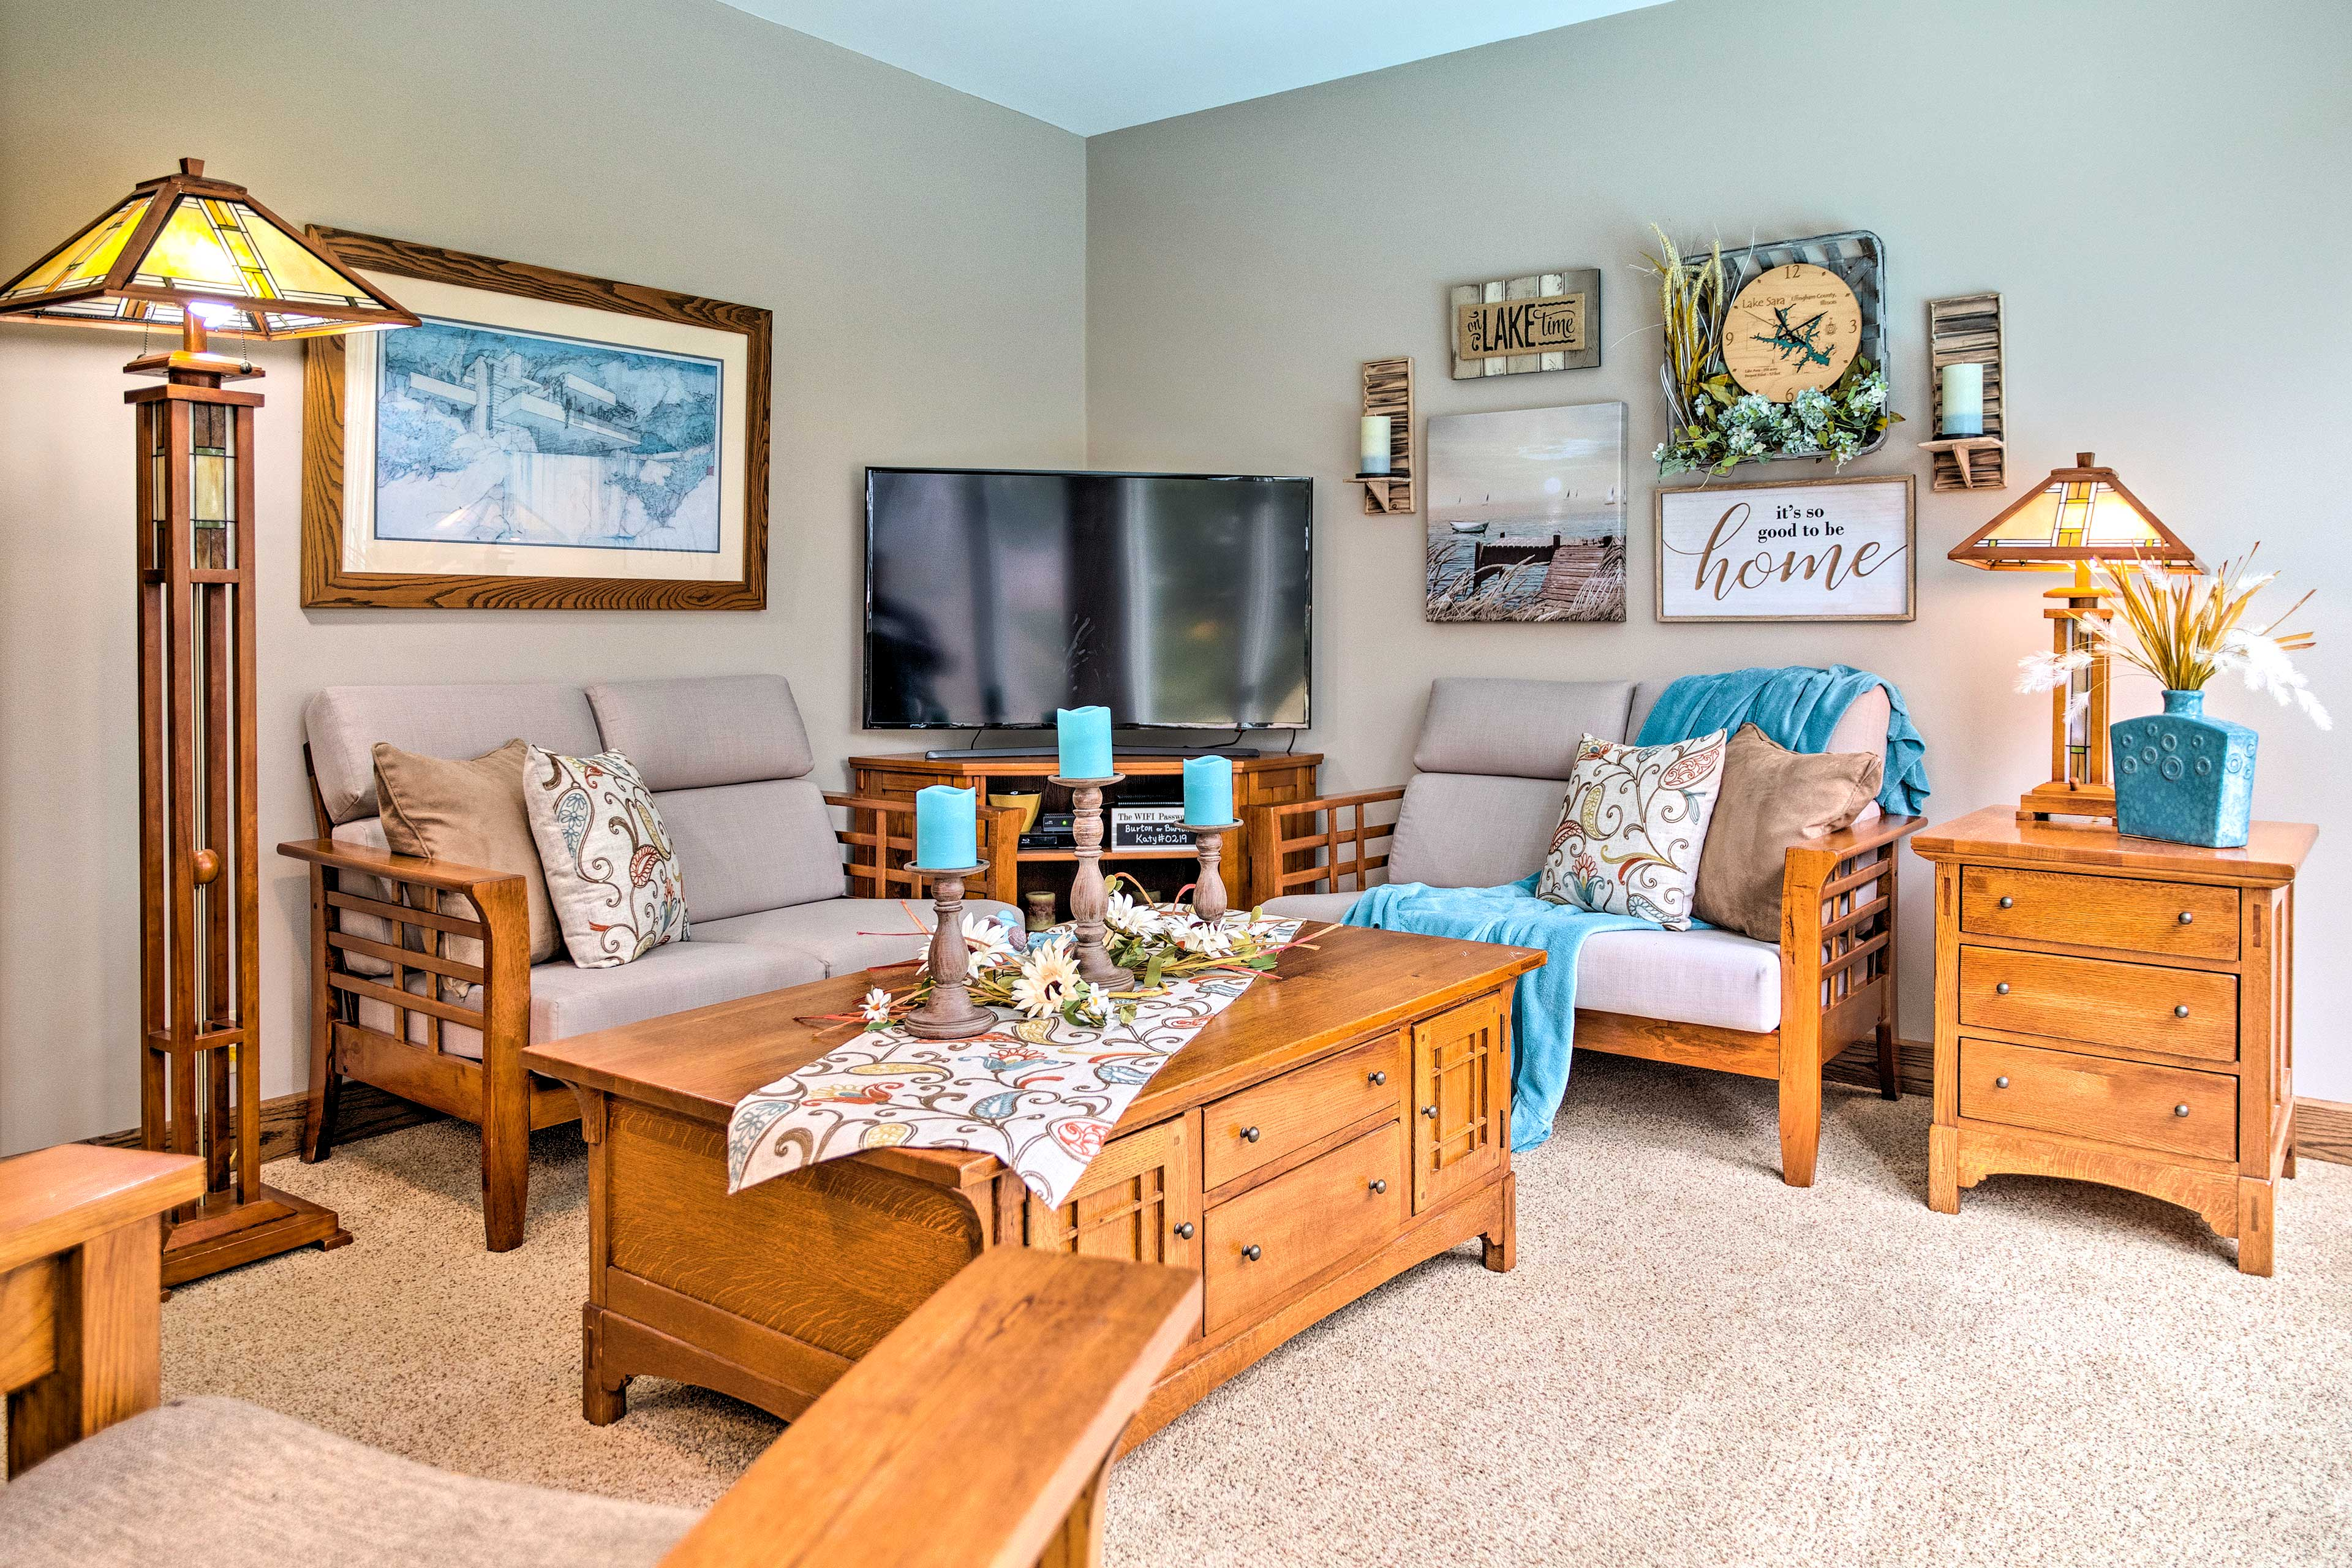 This inviting living space will have you feel right at home!